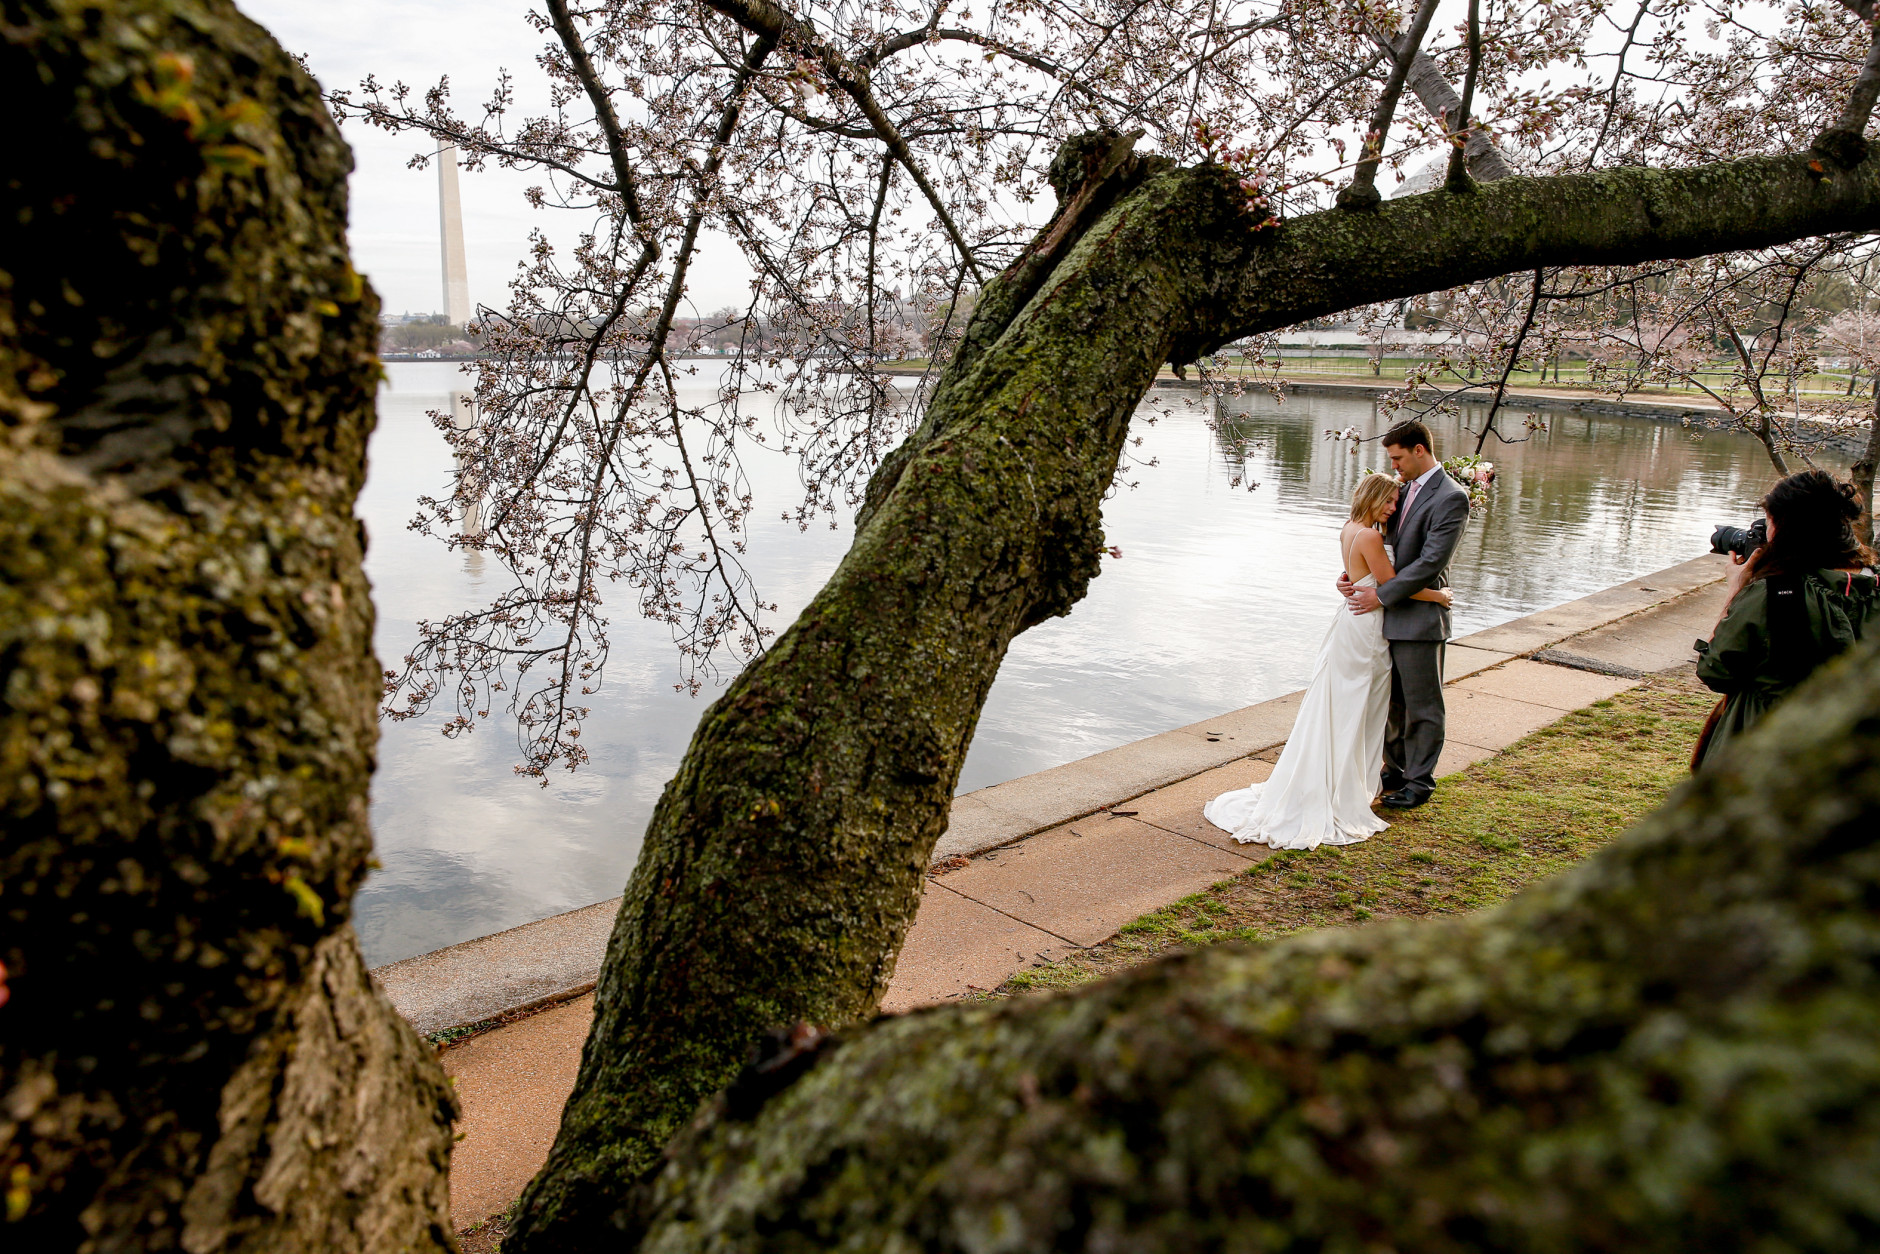 With the Washington Monument in the background, left, Rebekah Murray of Leesburg, Va., right, photographs Luke and Carolyn Woods of Silver Spring, Md., among the cherry blossoms trees along the Tidal Basin in Washington, Tuesday, April 7, 2015. Luke and Carolyn were married 4 years ago and are retaking their wedding photos. Officials are calling for a peak bloom period from April 11-14th. (AP Photo/Andrew Harnik)